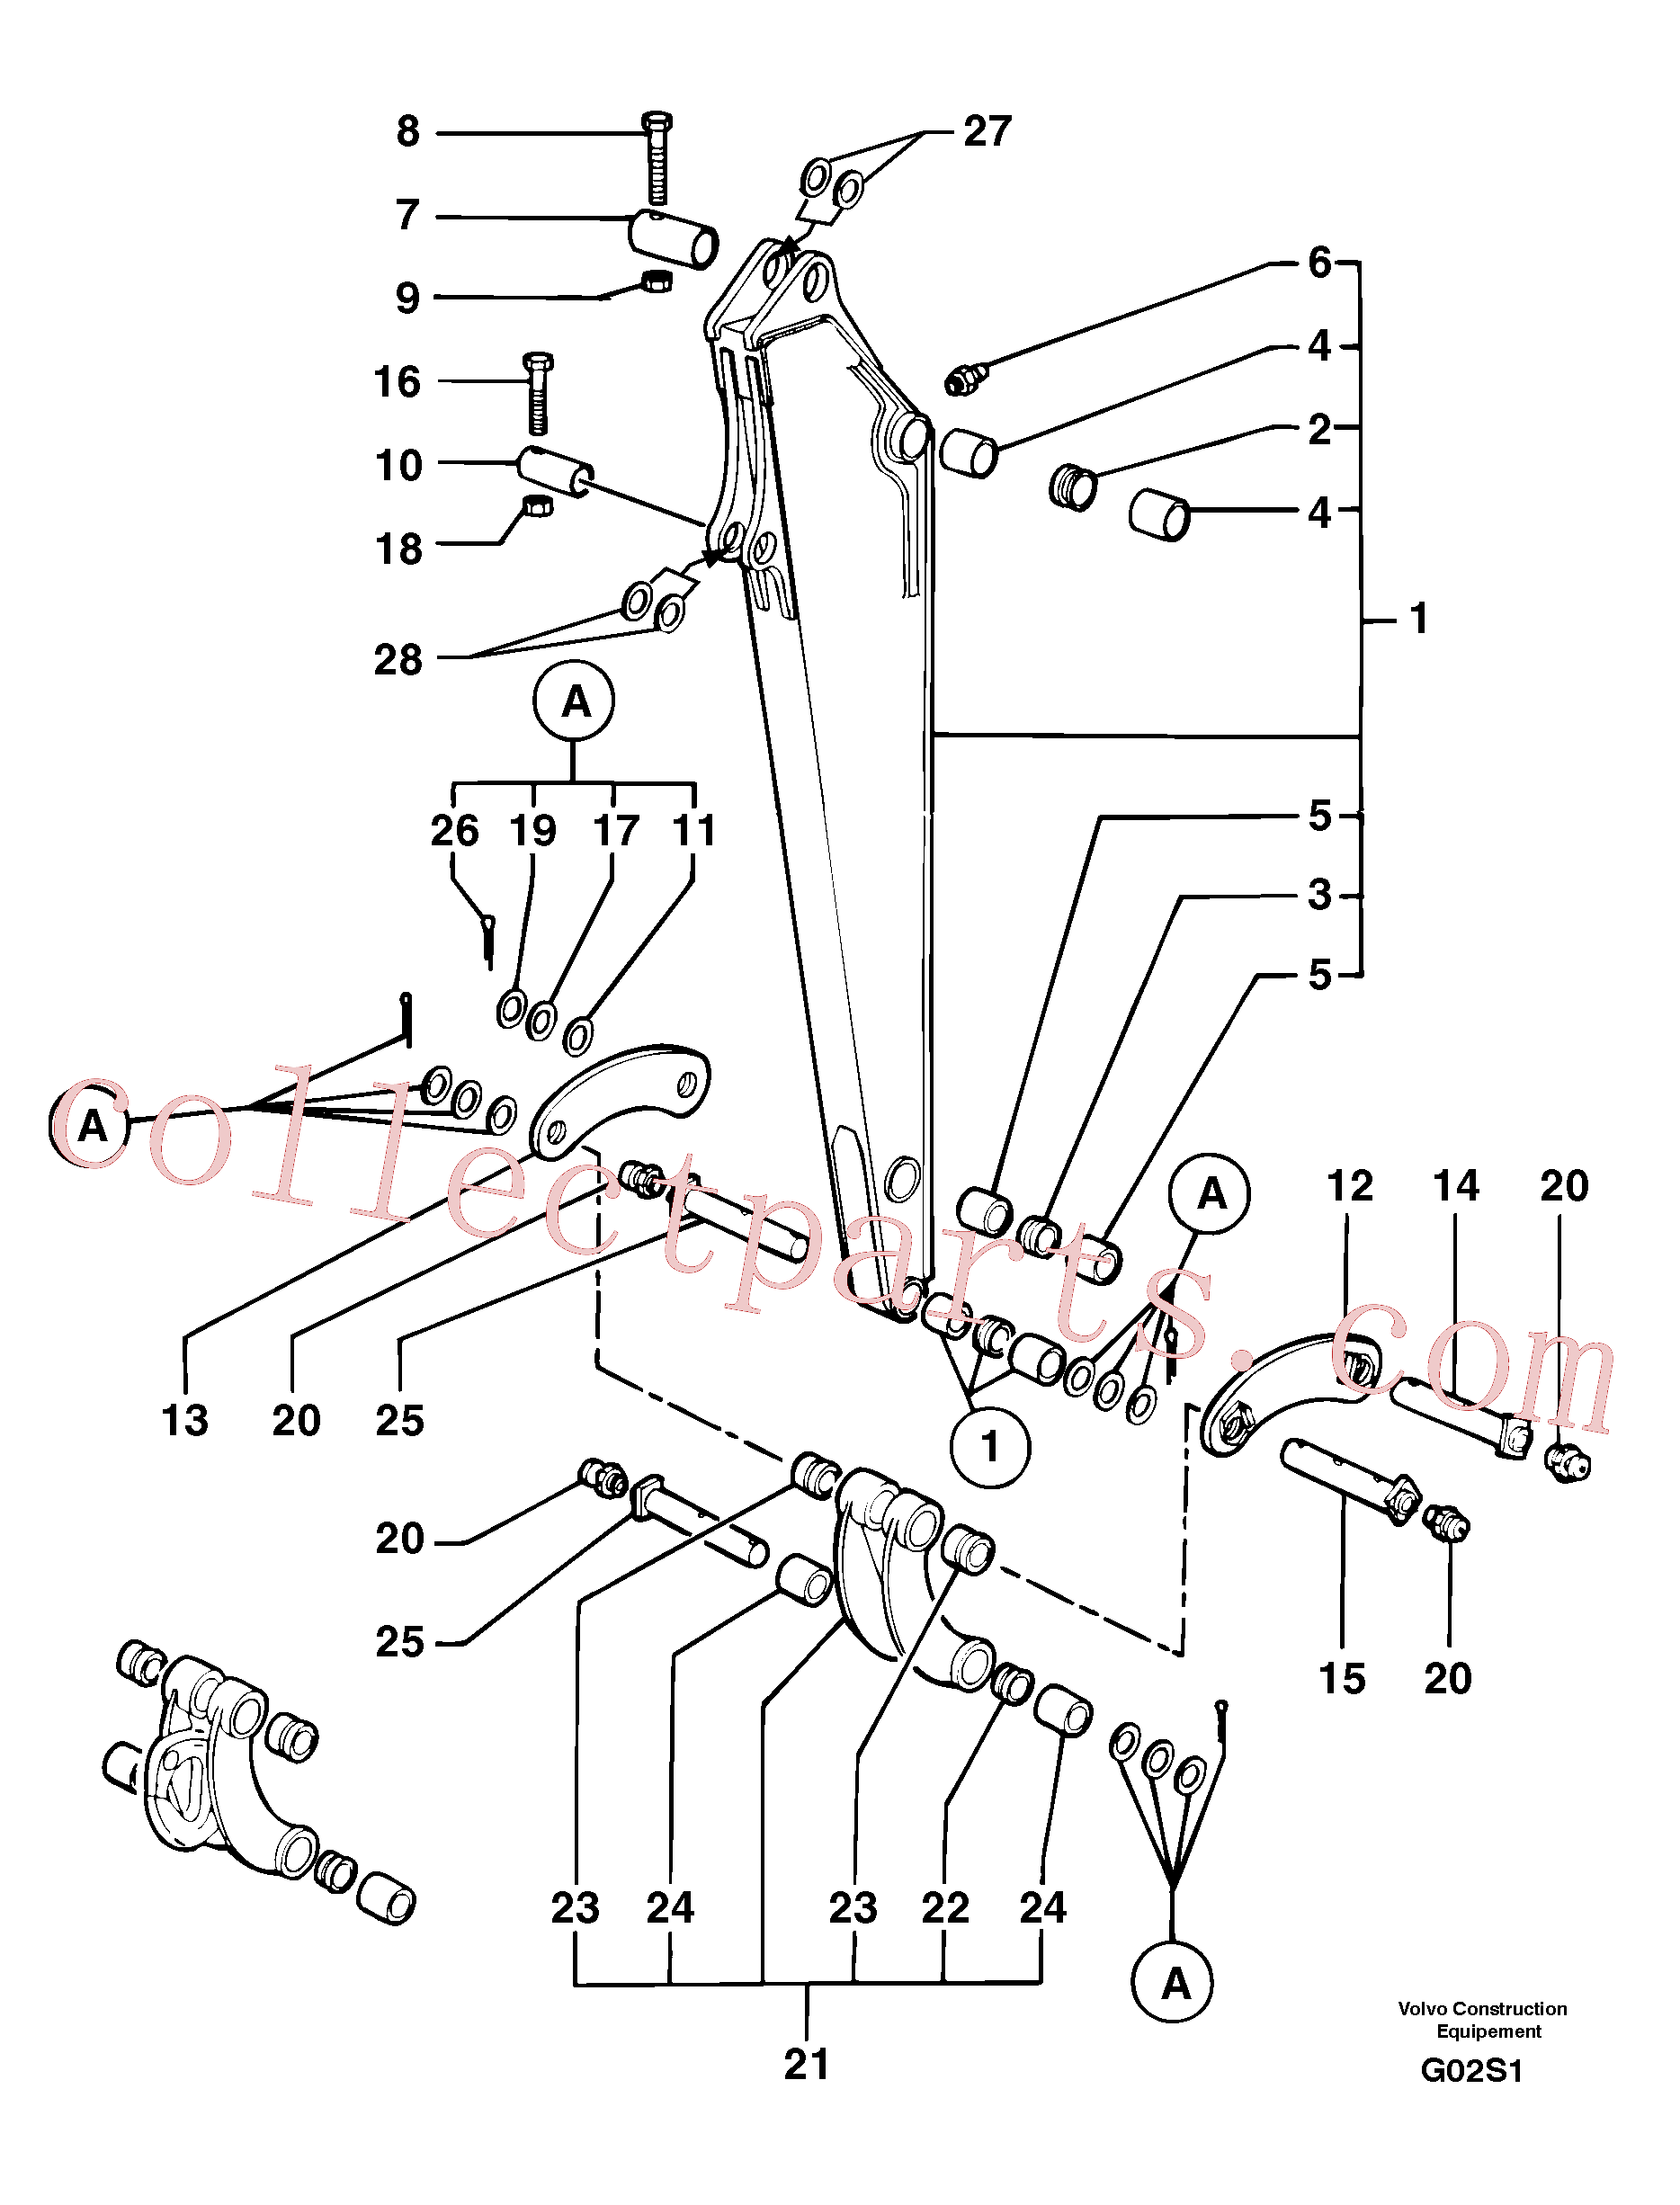 PJ5540099 for Volvo Dipper arm(G02S1 assembly)